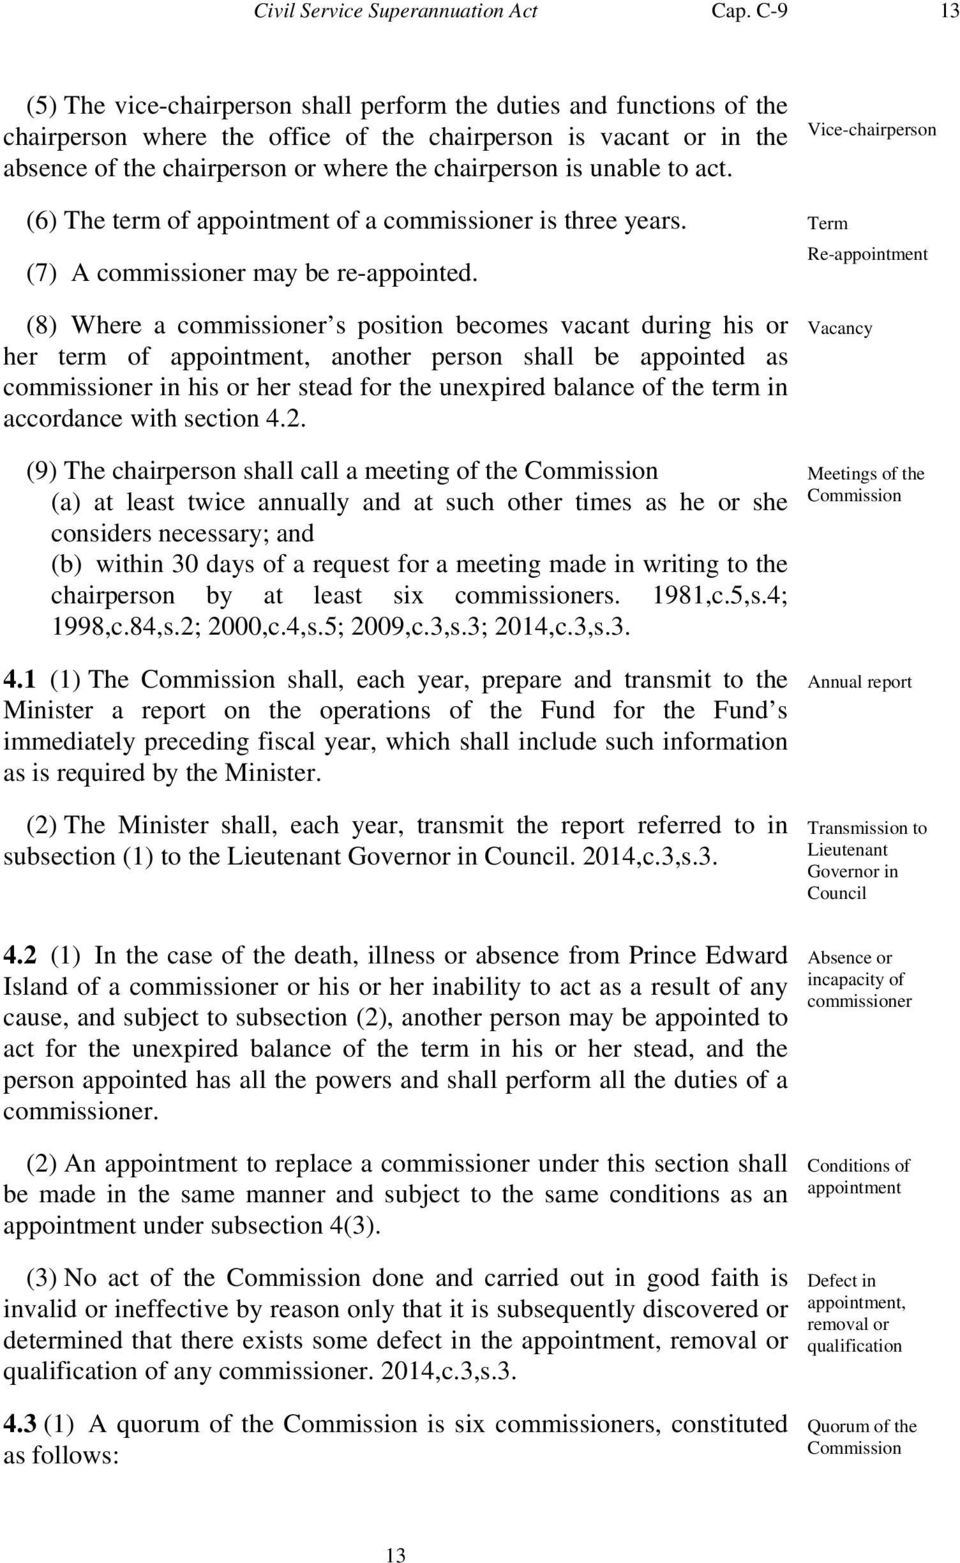 act. (6) The term of appointment of a commissioner is three years. (7) A commissioner may be re-appointed.